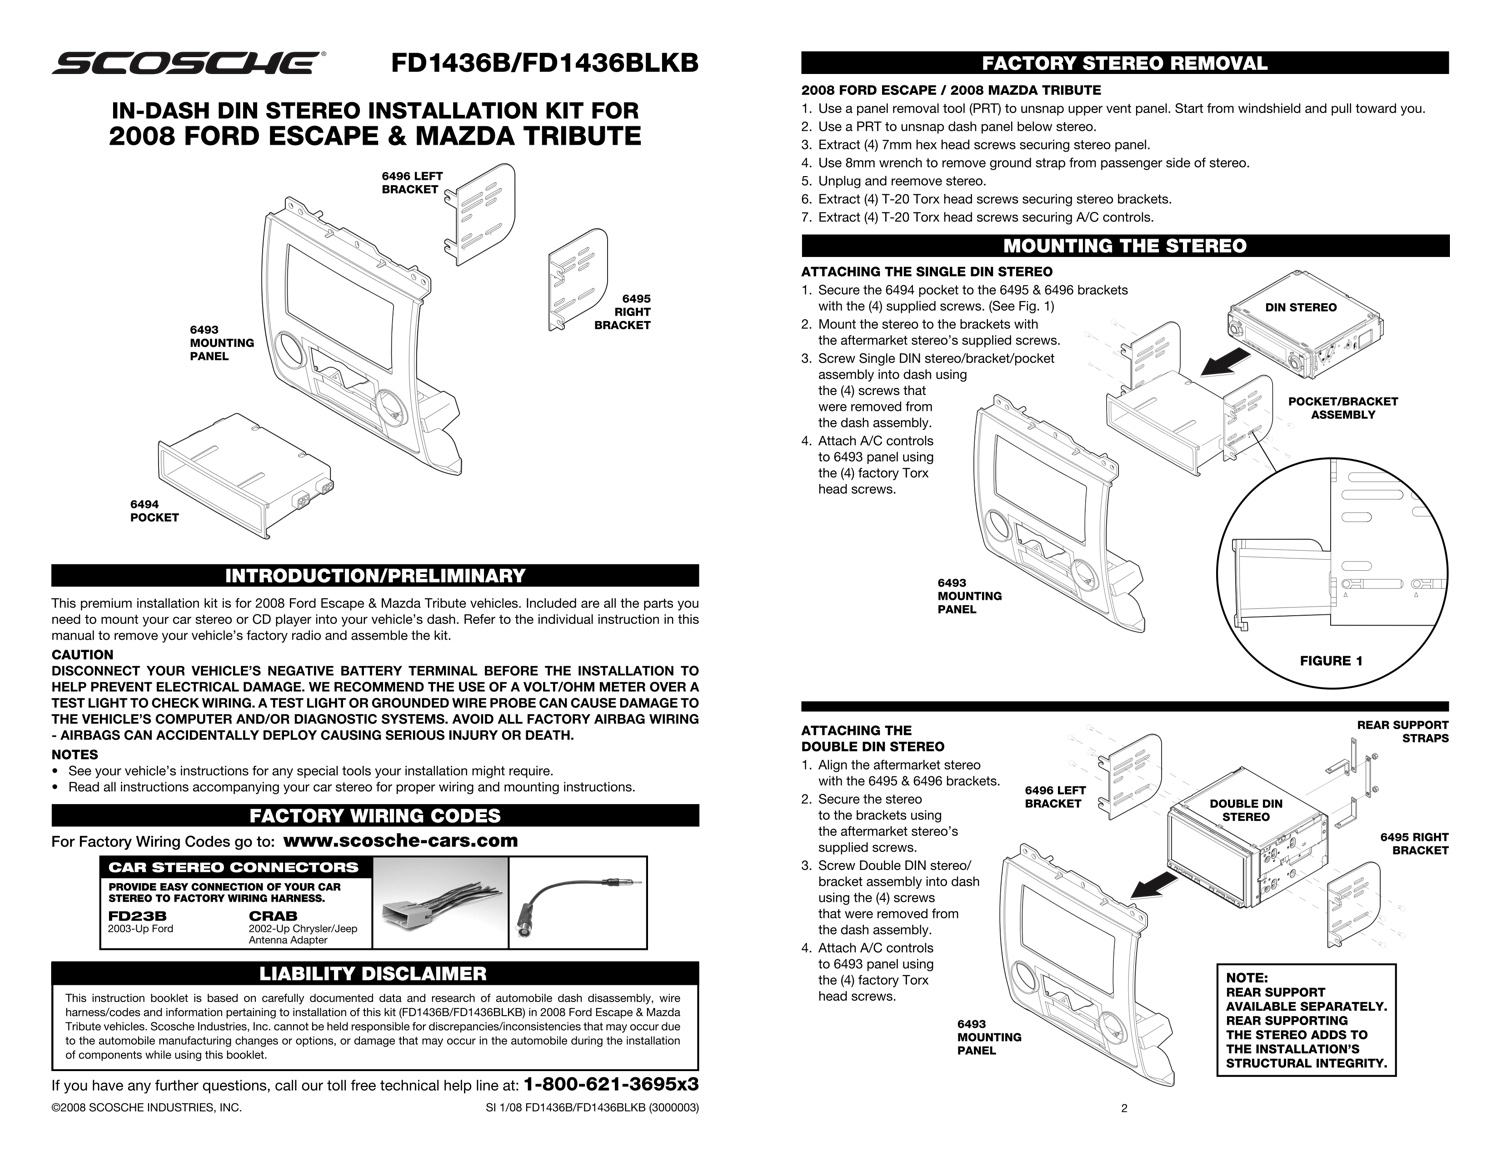 Vz Binnacle Gauge Wiring Diagram Best Image 2018 Acura Vigor Fuse Crayonbox Co